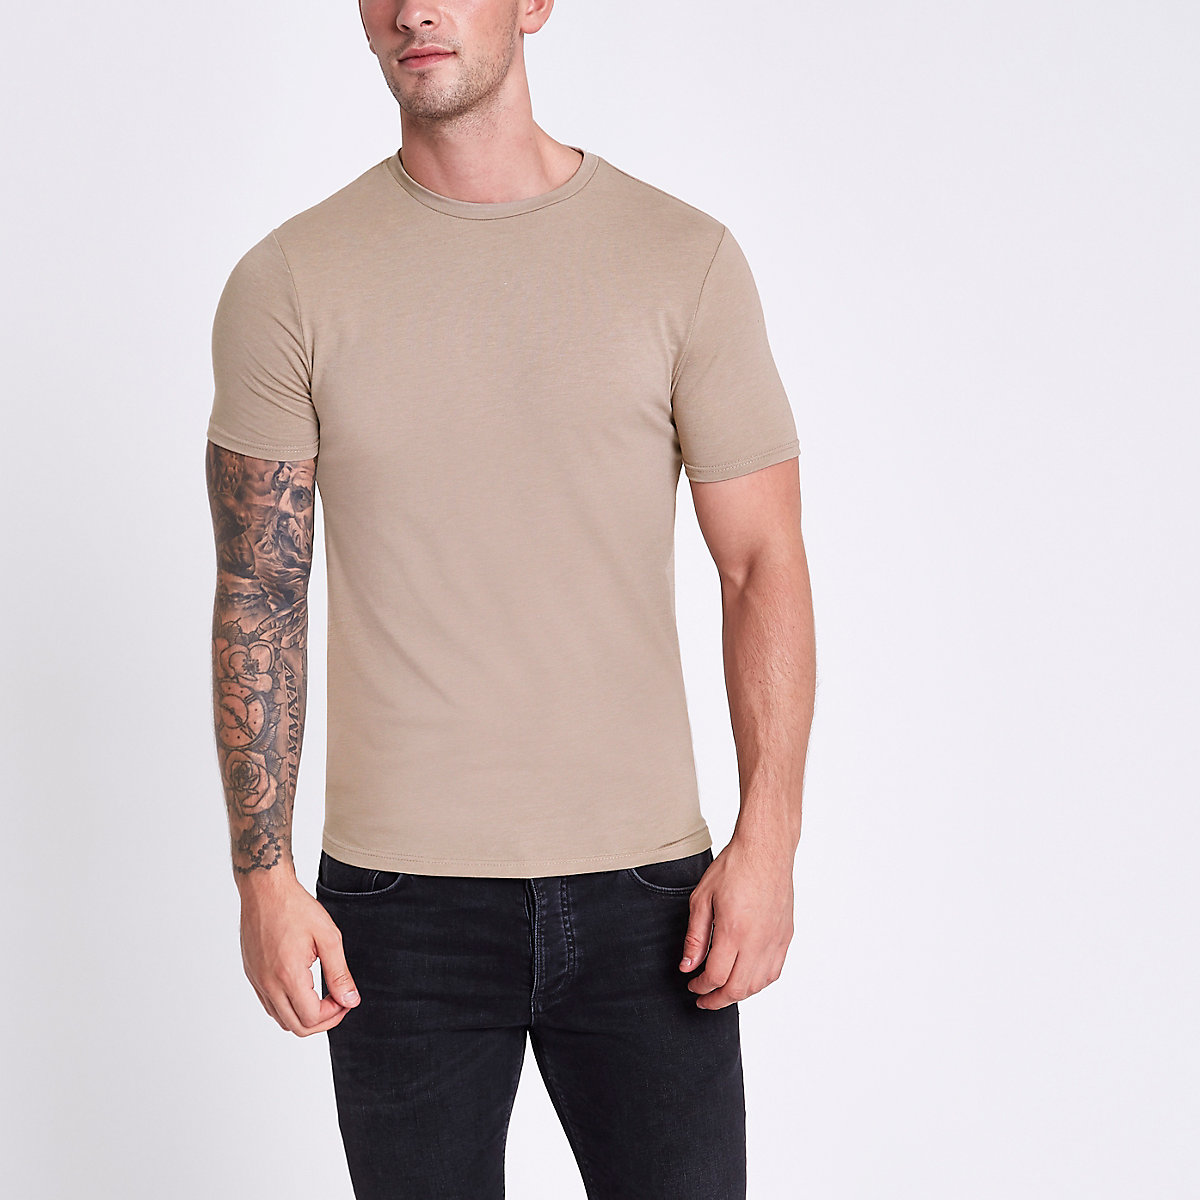 Brown marl muscle fit crew neck T-shirt